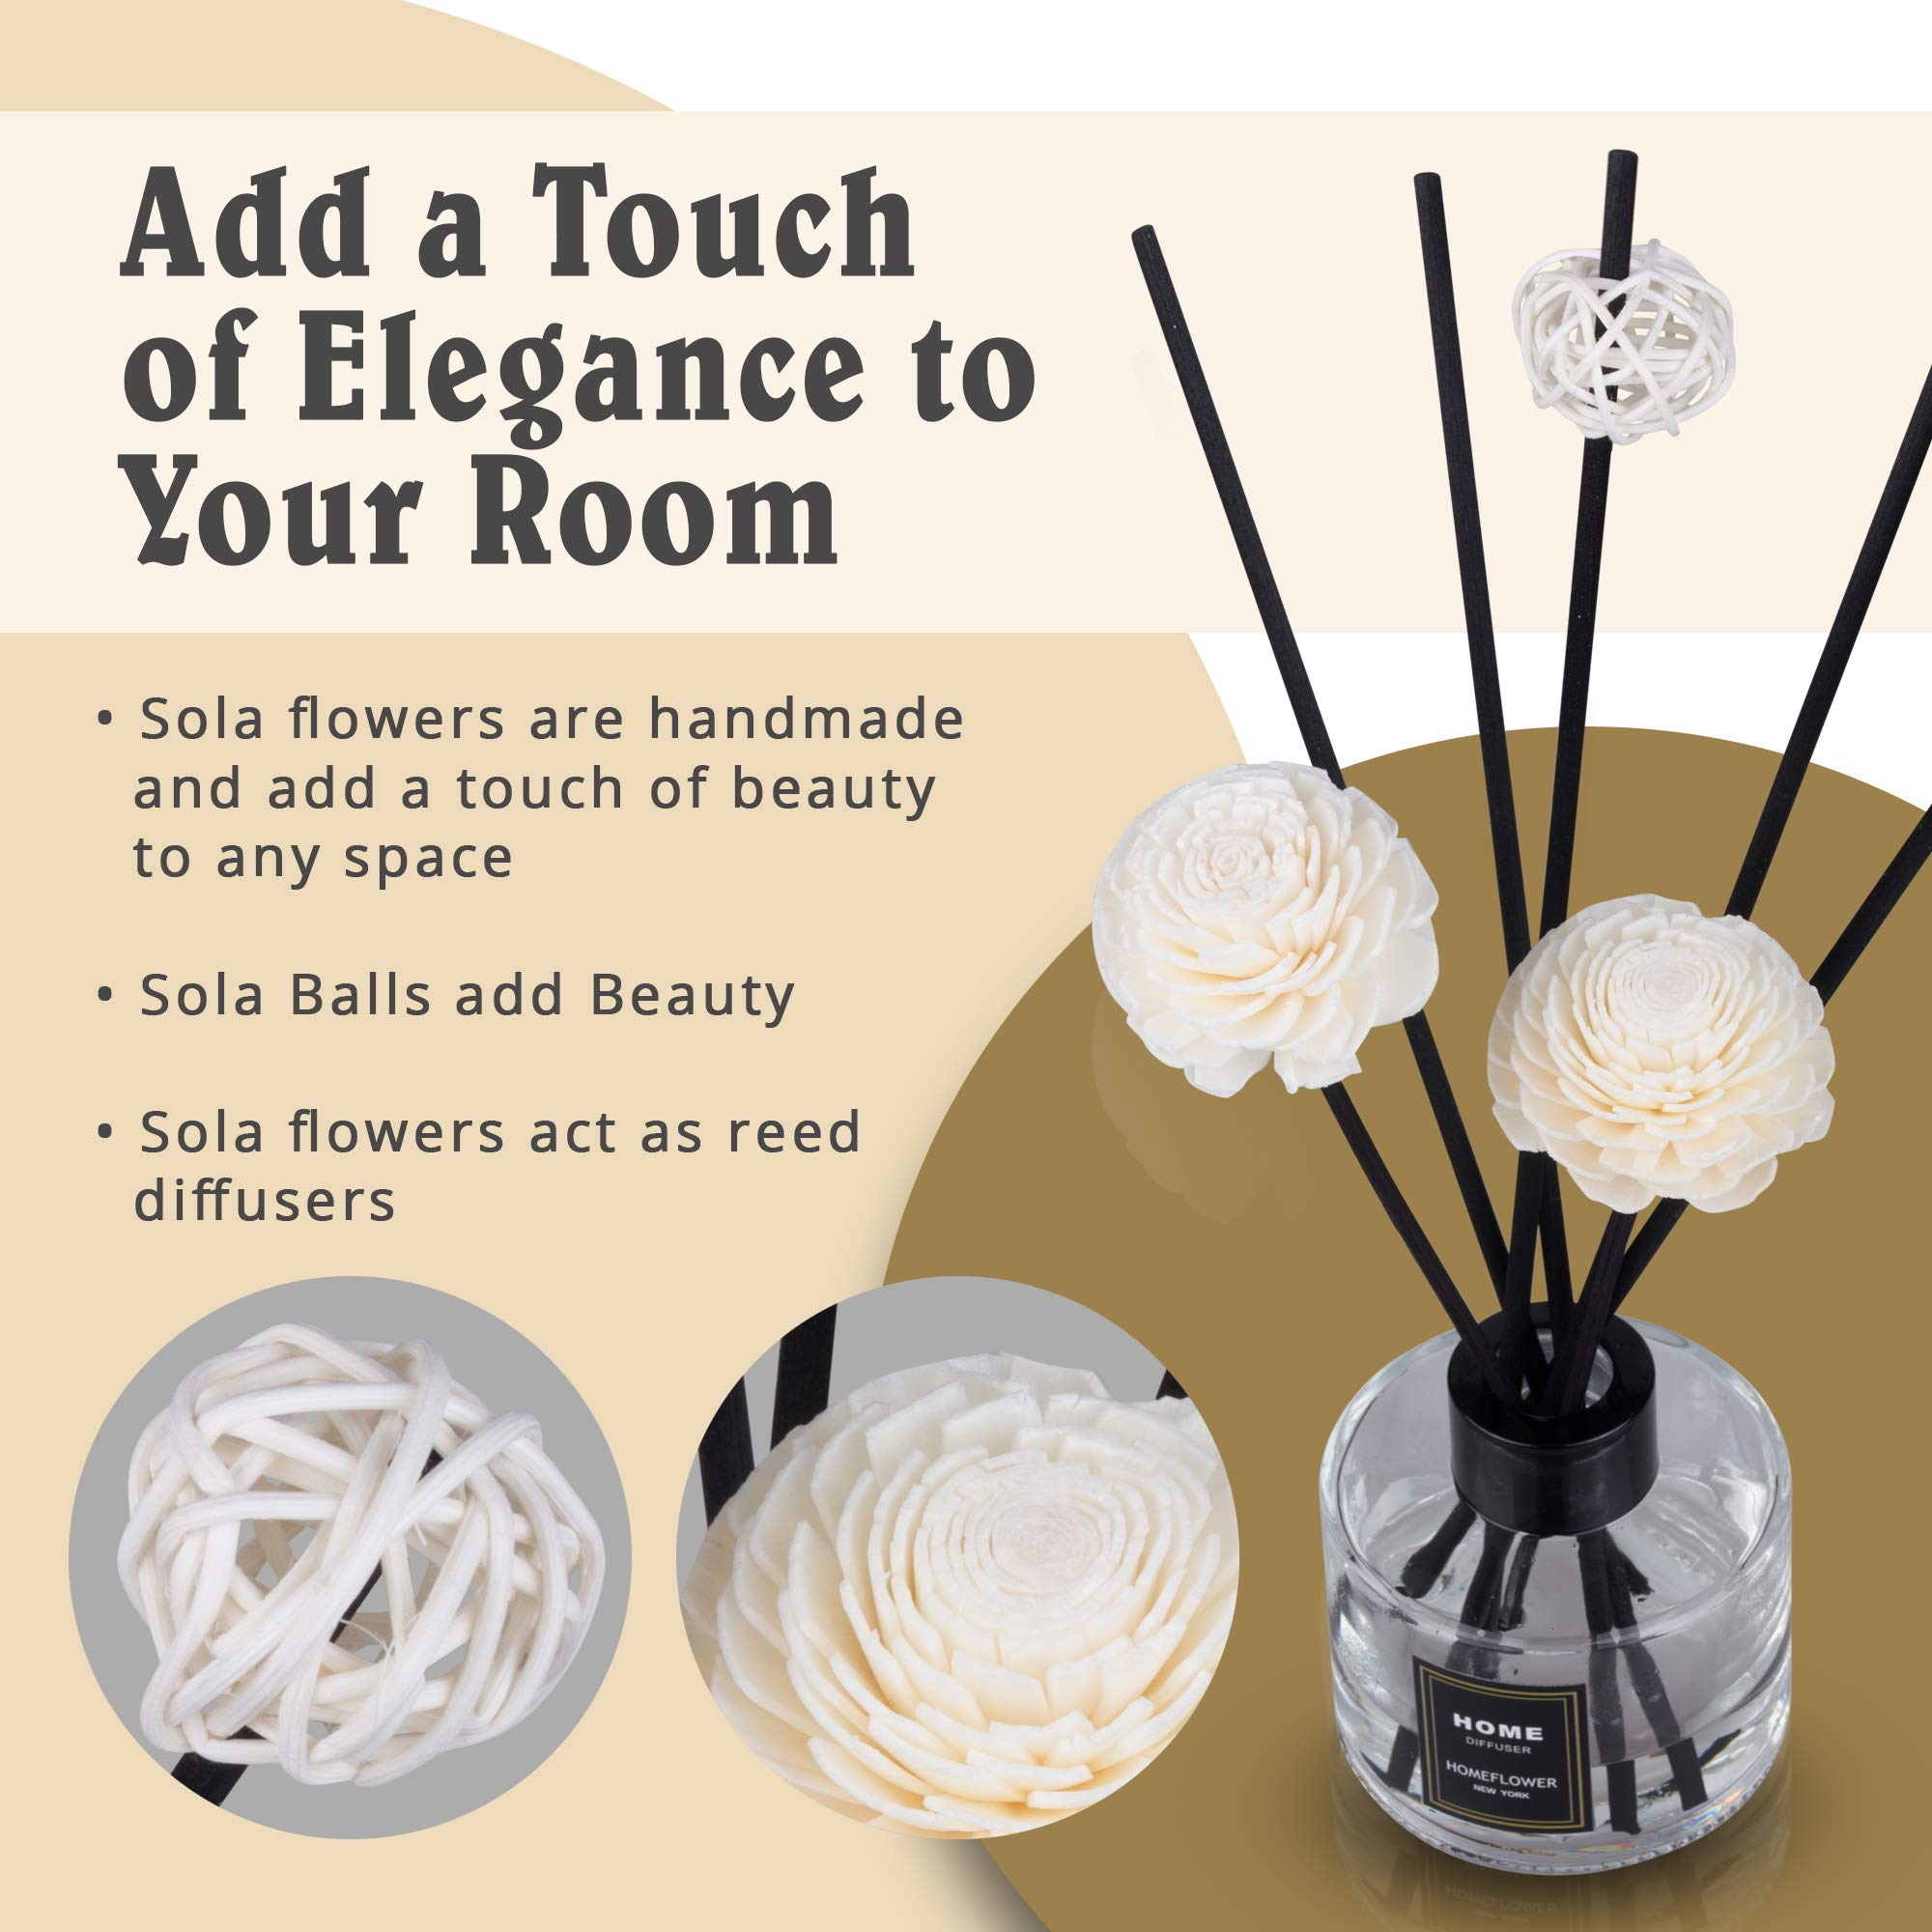 HomeFlower Reed Diffuser Set Lavender: Scent Sticks & Sola Flowers Included - Scented Liquid Fragrance Oil - Room Diffusers for Home or Bathroom - Made with FreshScent Premium Essential Oils - 4 oz by HomeFlower (Image #2)